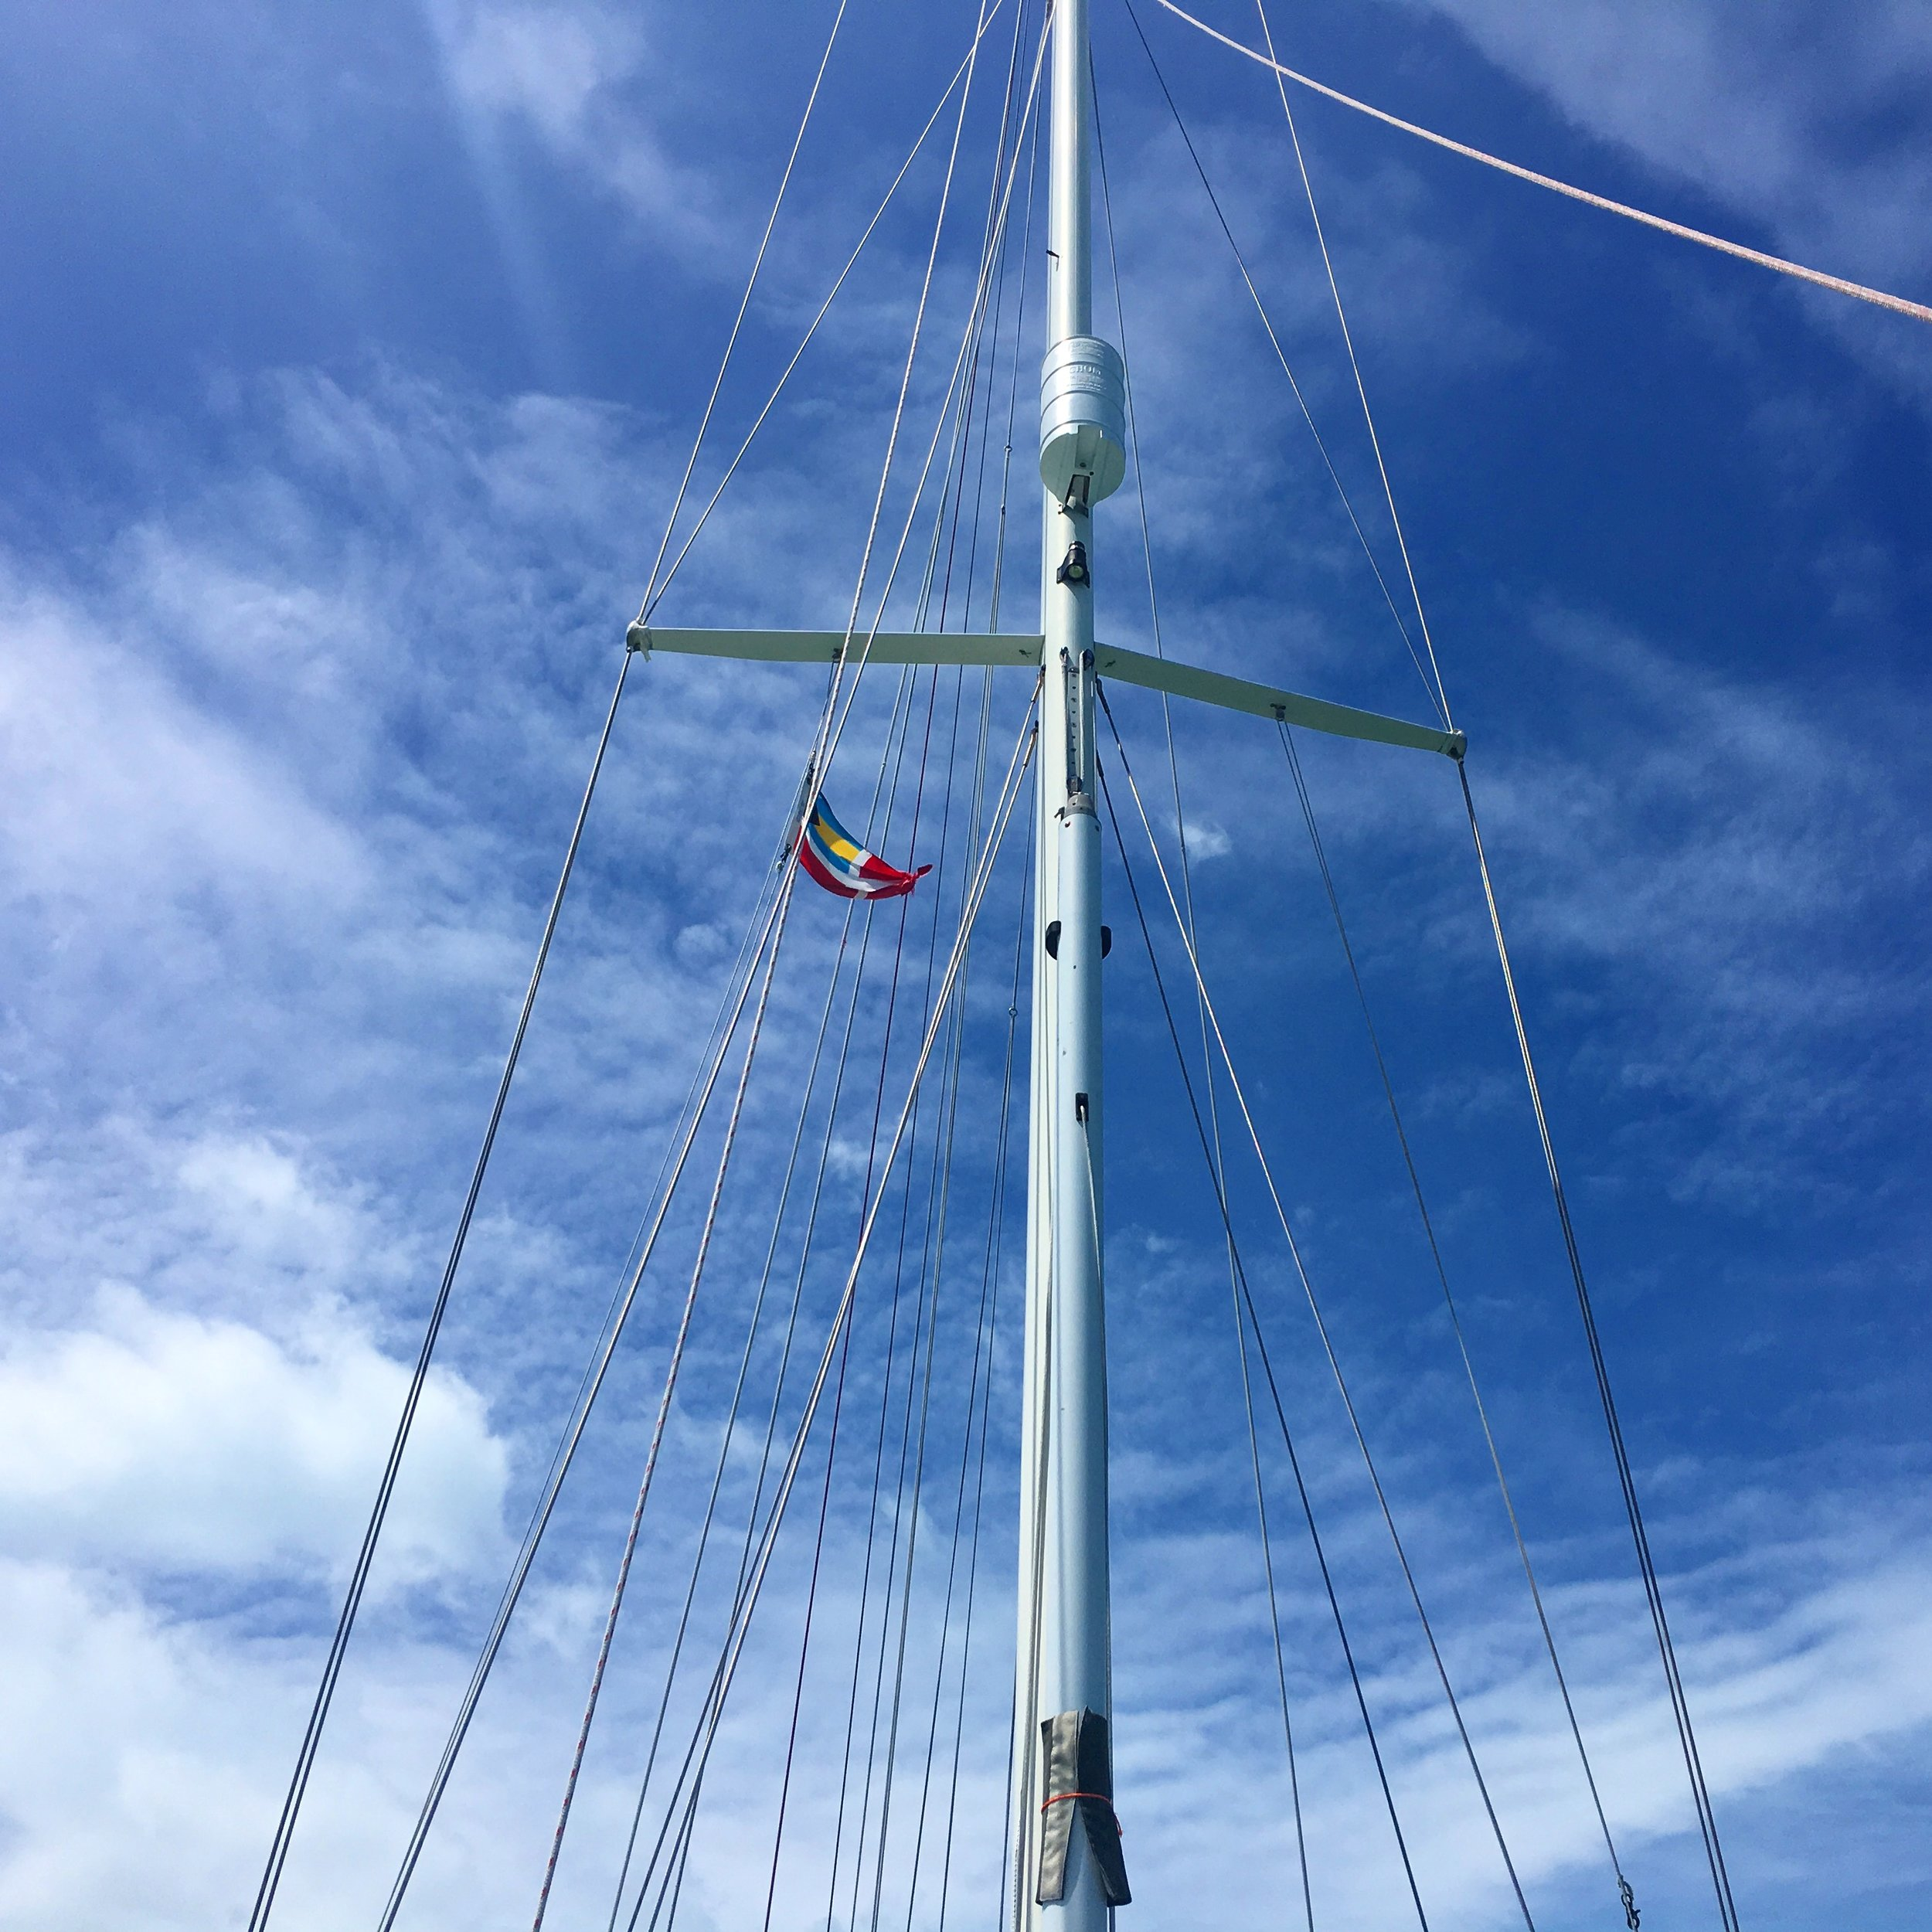 Our tattered Bahamas flag on the starboard spreader.